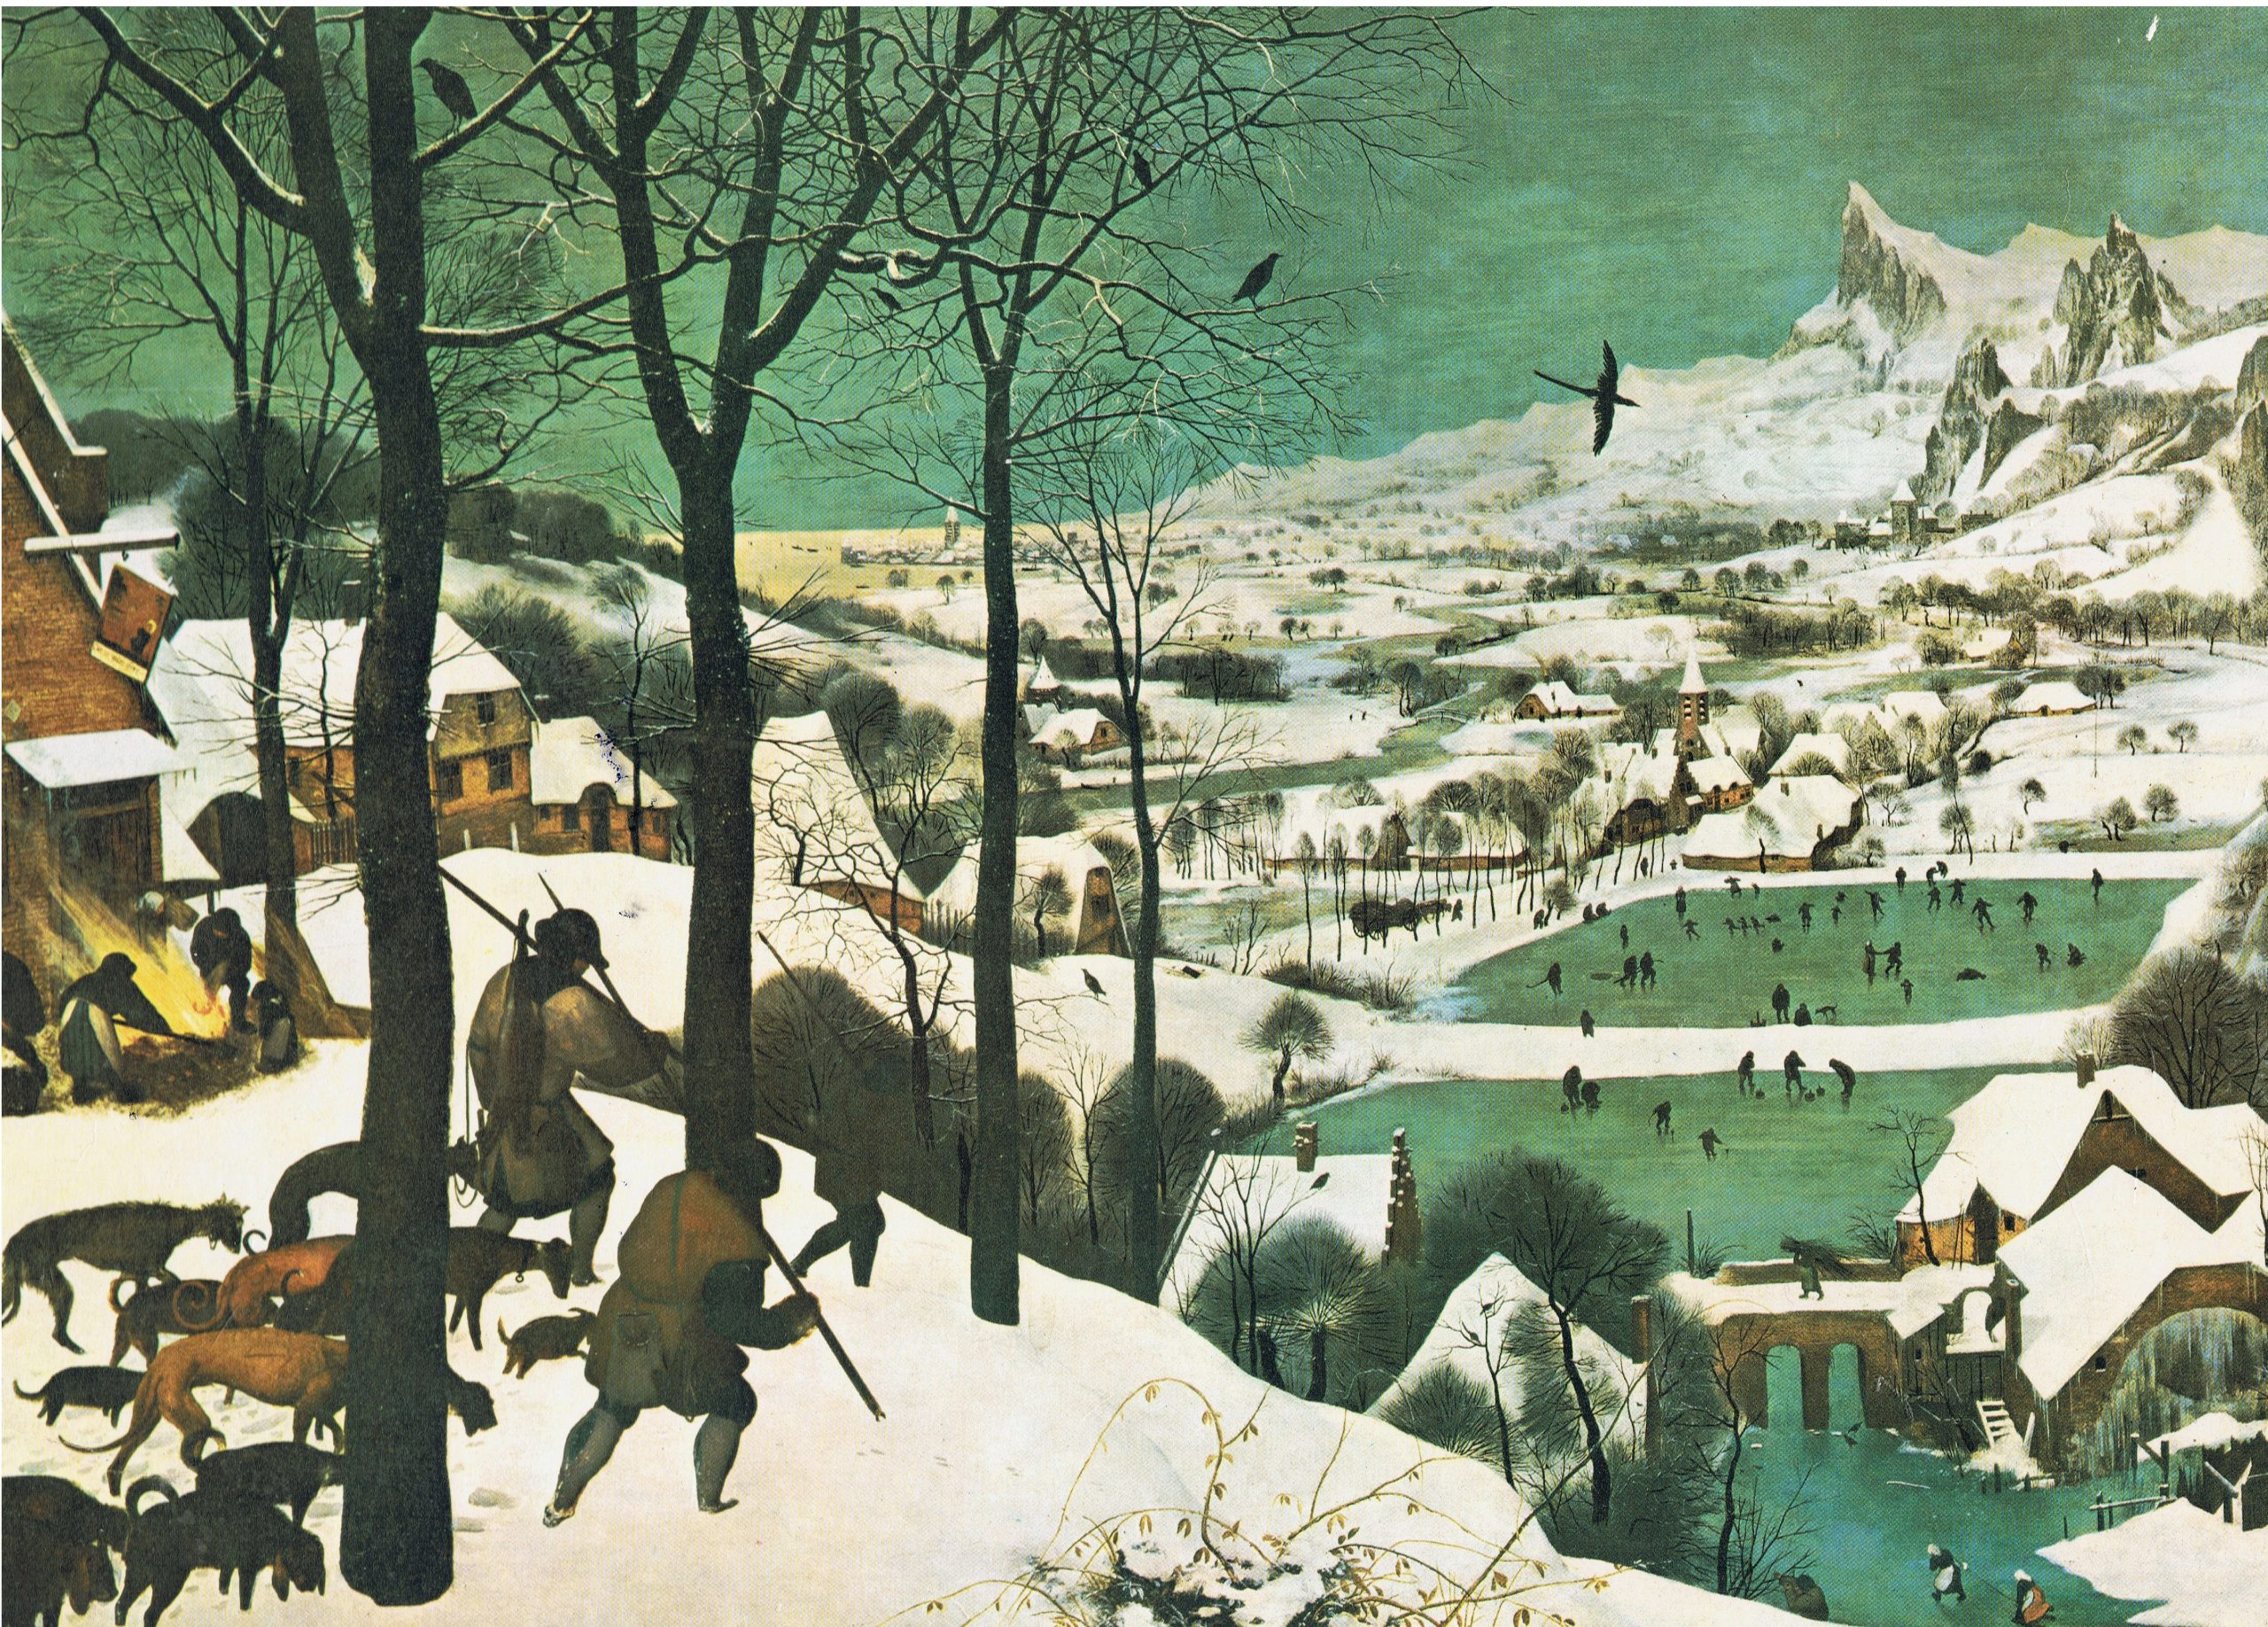 The Hunters in the Snow, by Pieter Bruegel the Elder